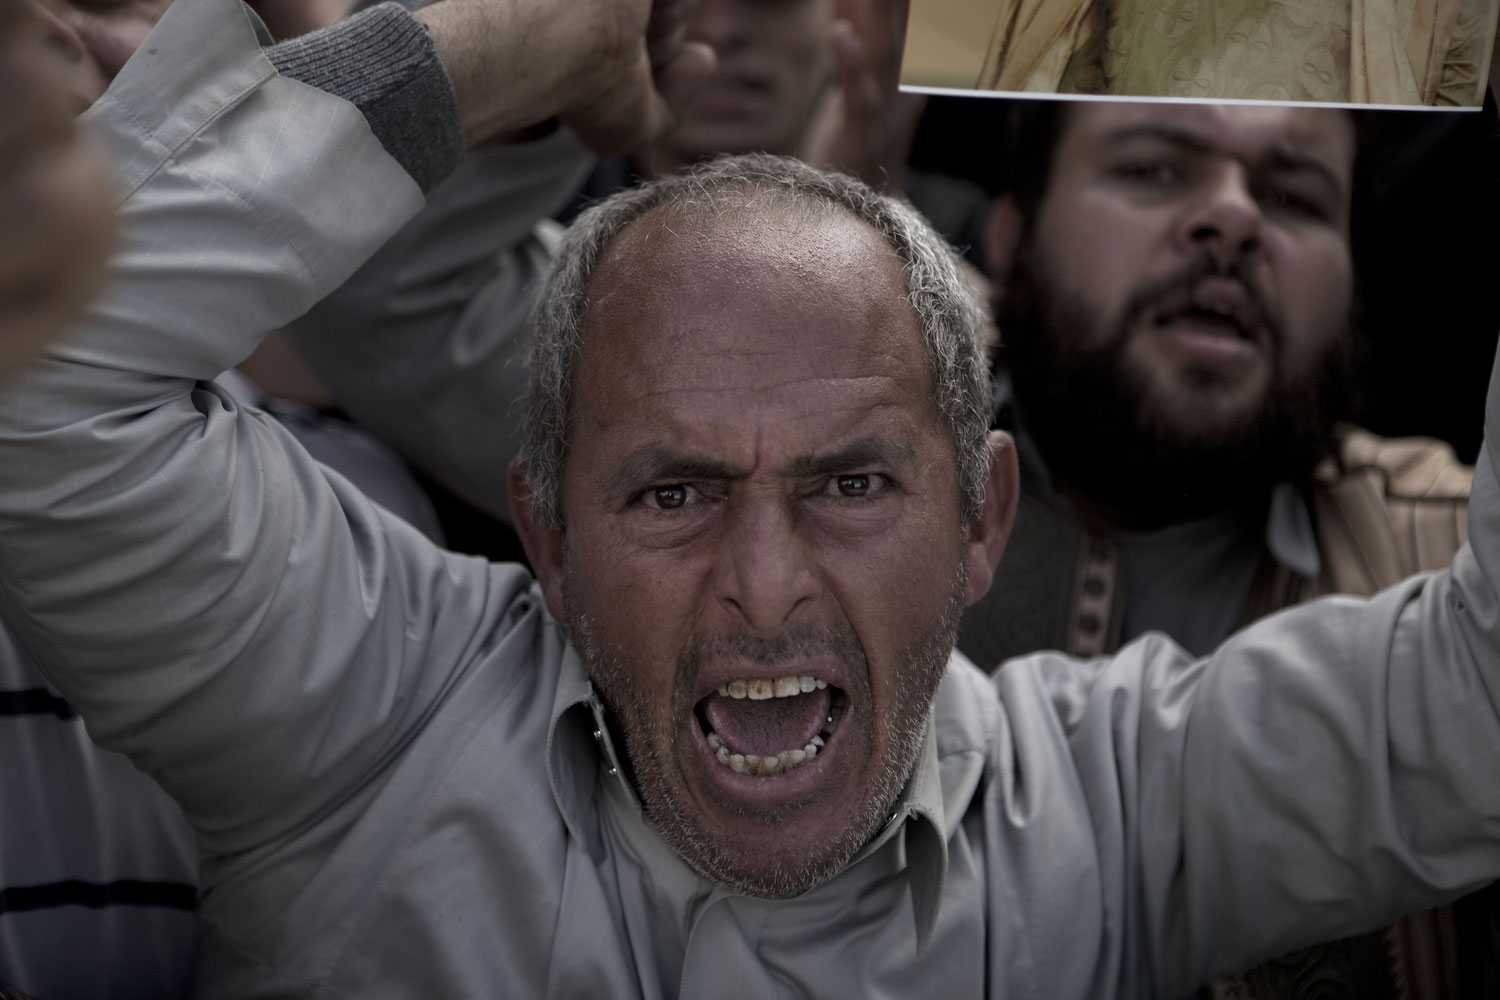 Supporters of Gaddafi vent their anger towards the foreign media in Ban-Waled, March 23, 2011.